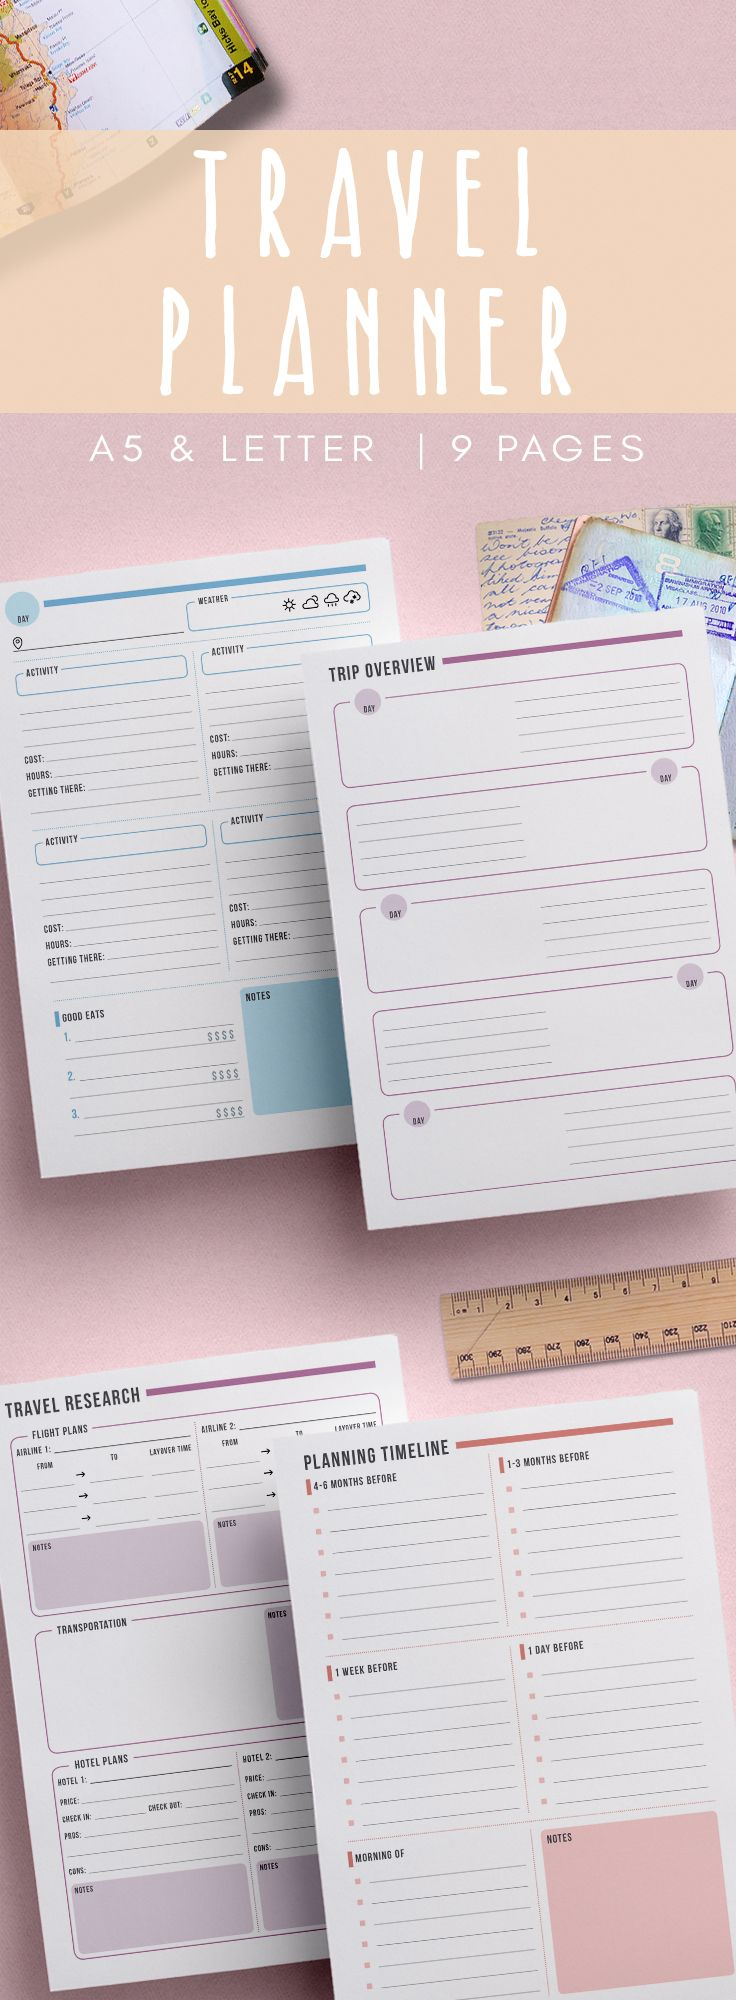 Divorce Letter Template Free%0A Stay organized with this   page travel planning kit  Features packing list   travel itinerary